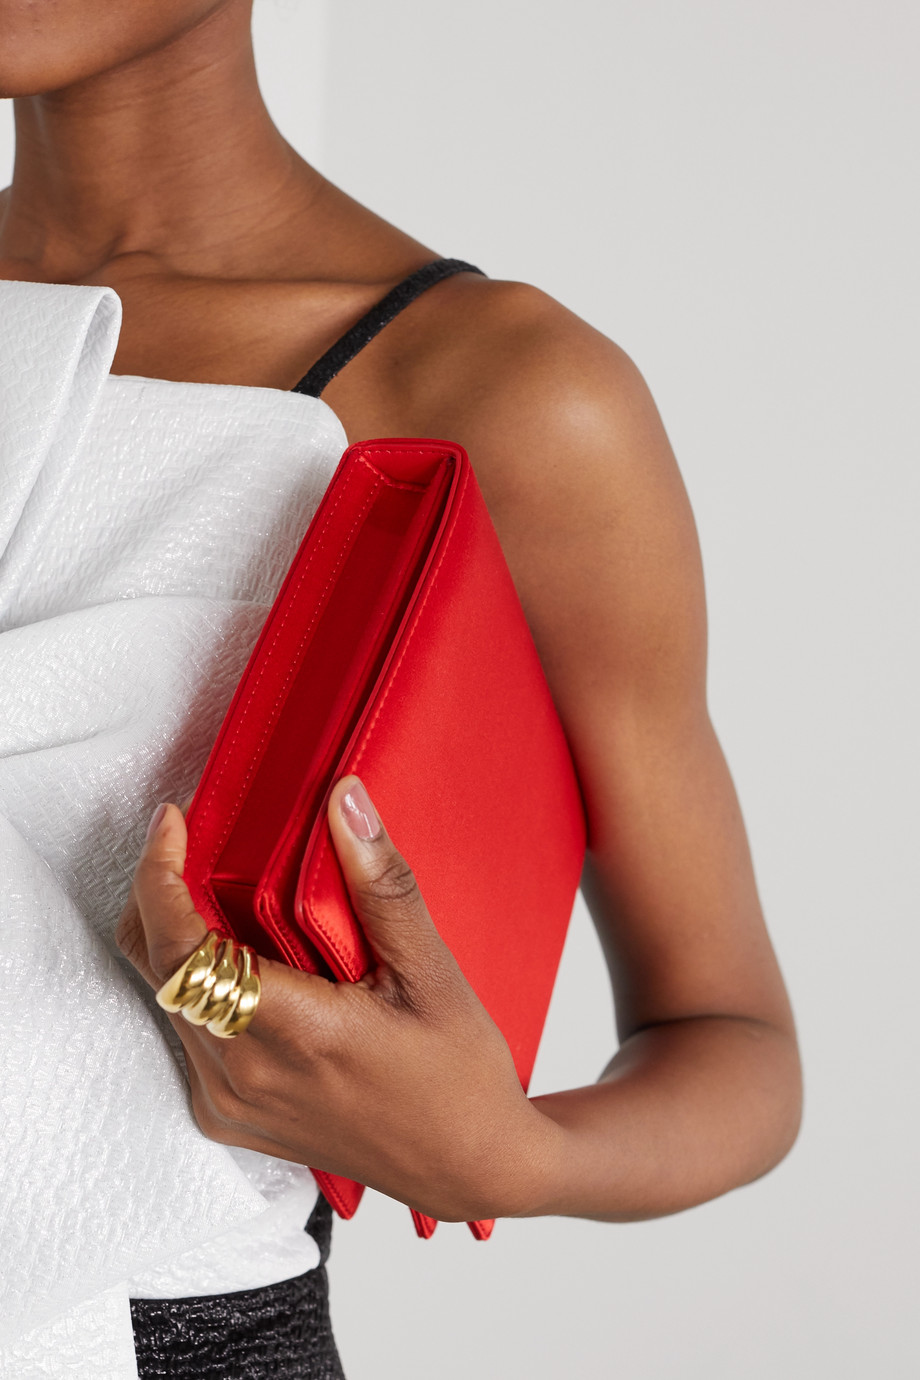 Emilia Wickstead Satin clutch